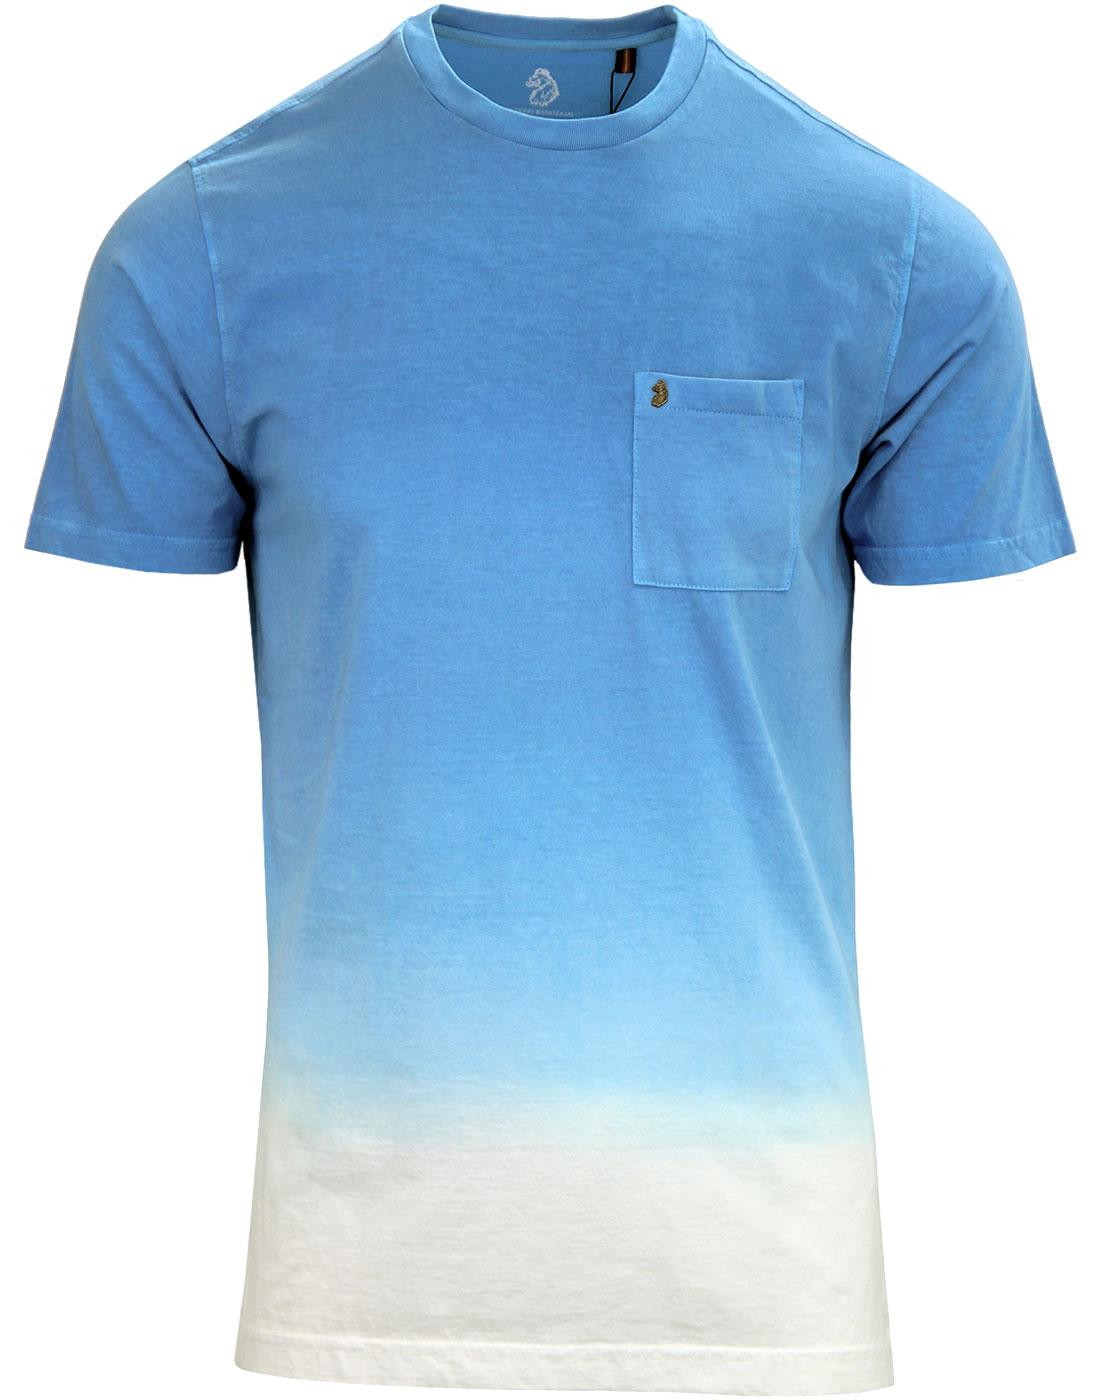 Half Soaked LUKE Men's Retro Indie Tie Dye Tee (S)